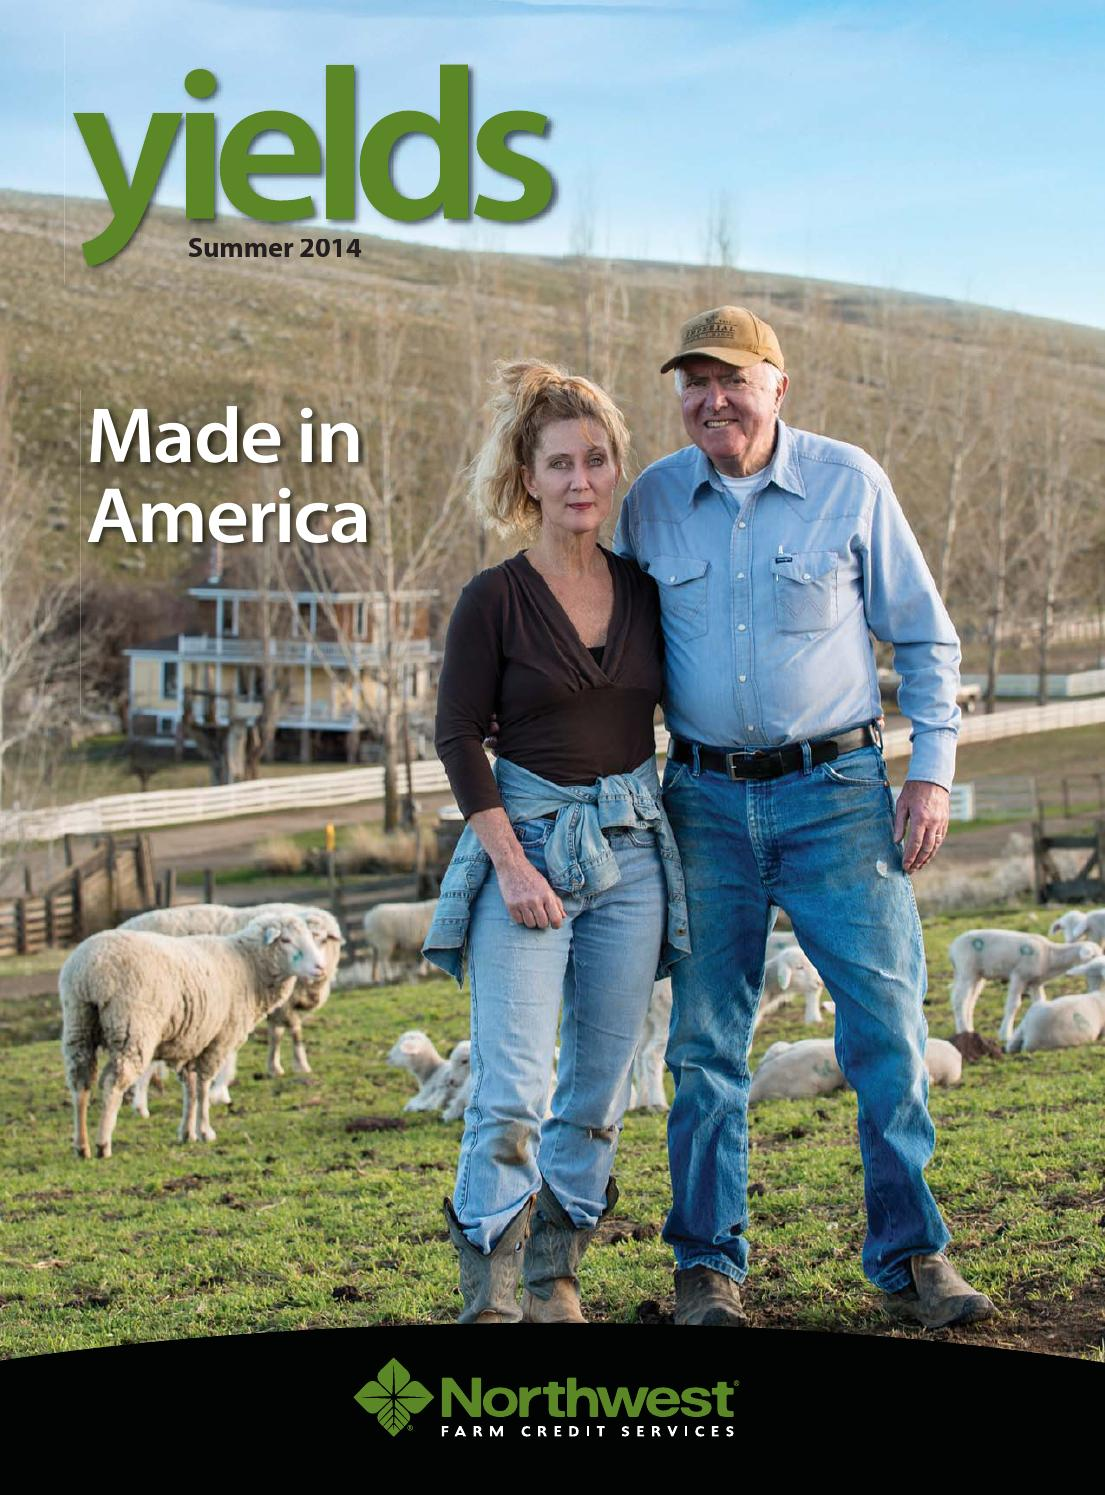 Country Store Spokane >> Northwest FCS Yields - Made in America - Summer 2014 by